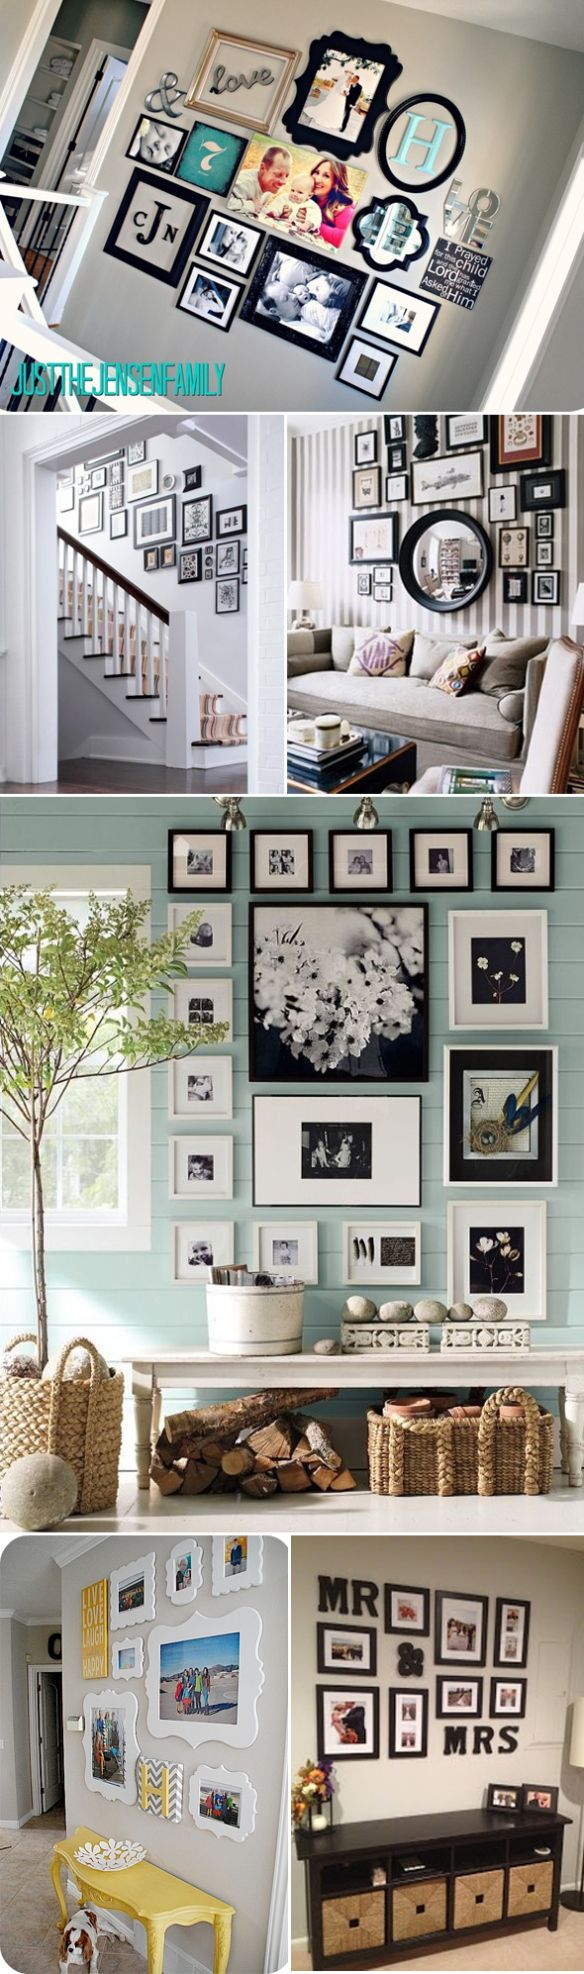 Great ideas for picture hanging arrangements!! for the family room ...